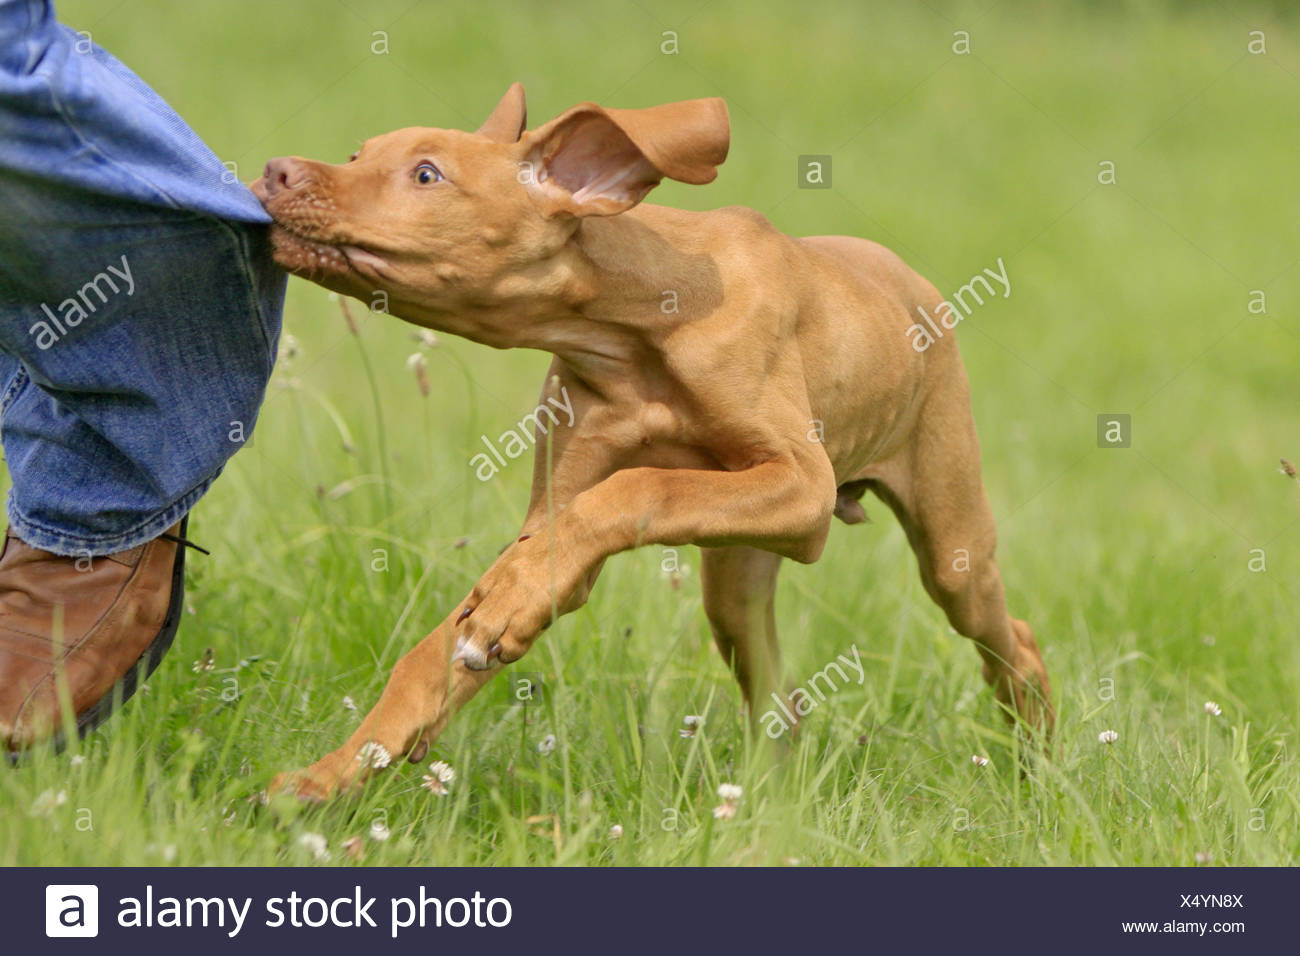 Magyar Vizsla - puppy biting in trousers - Stock Image